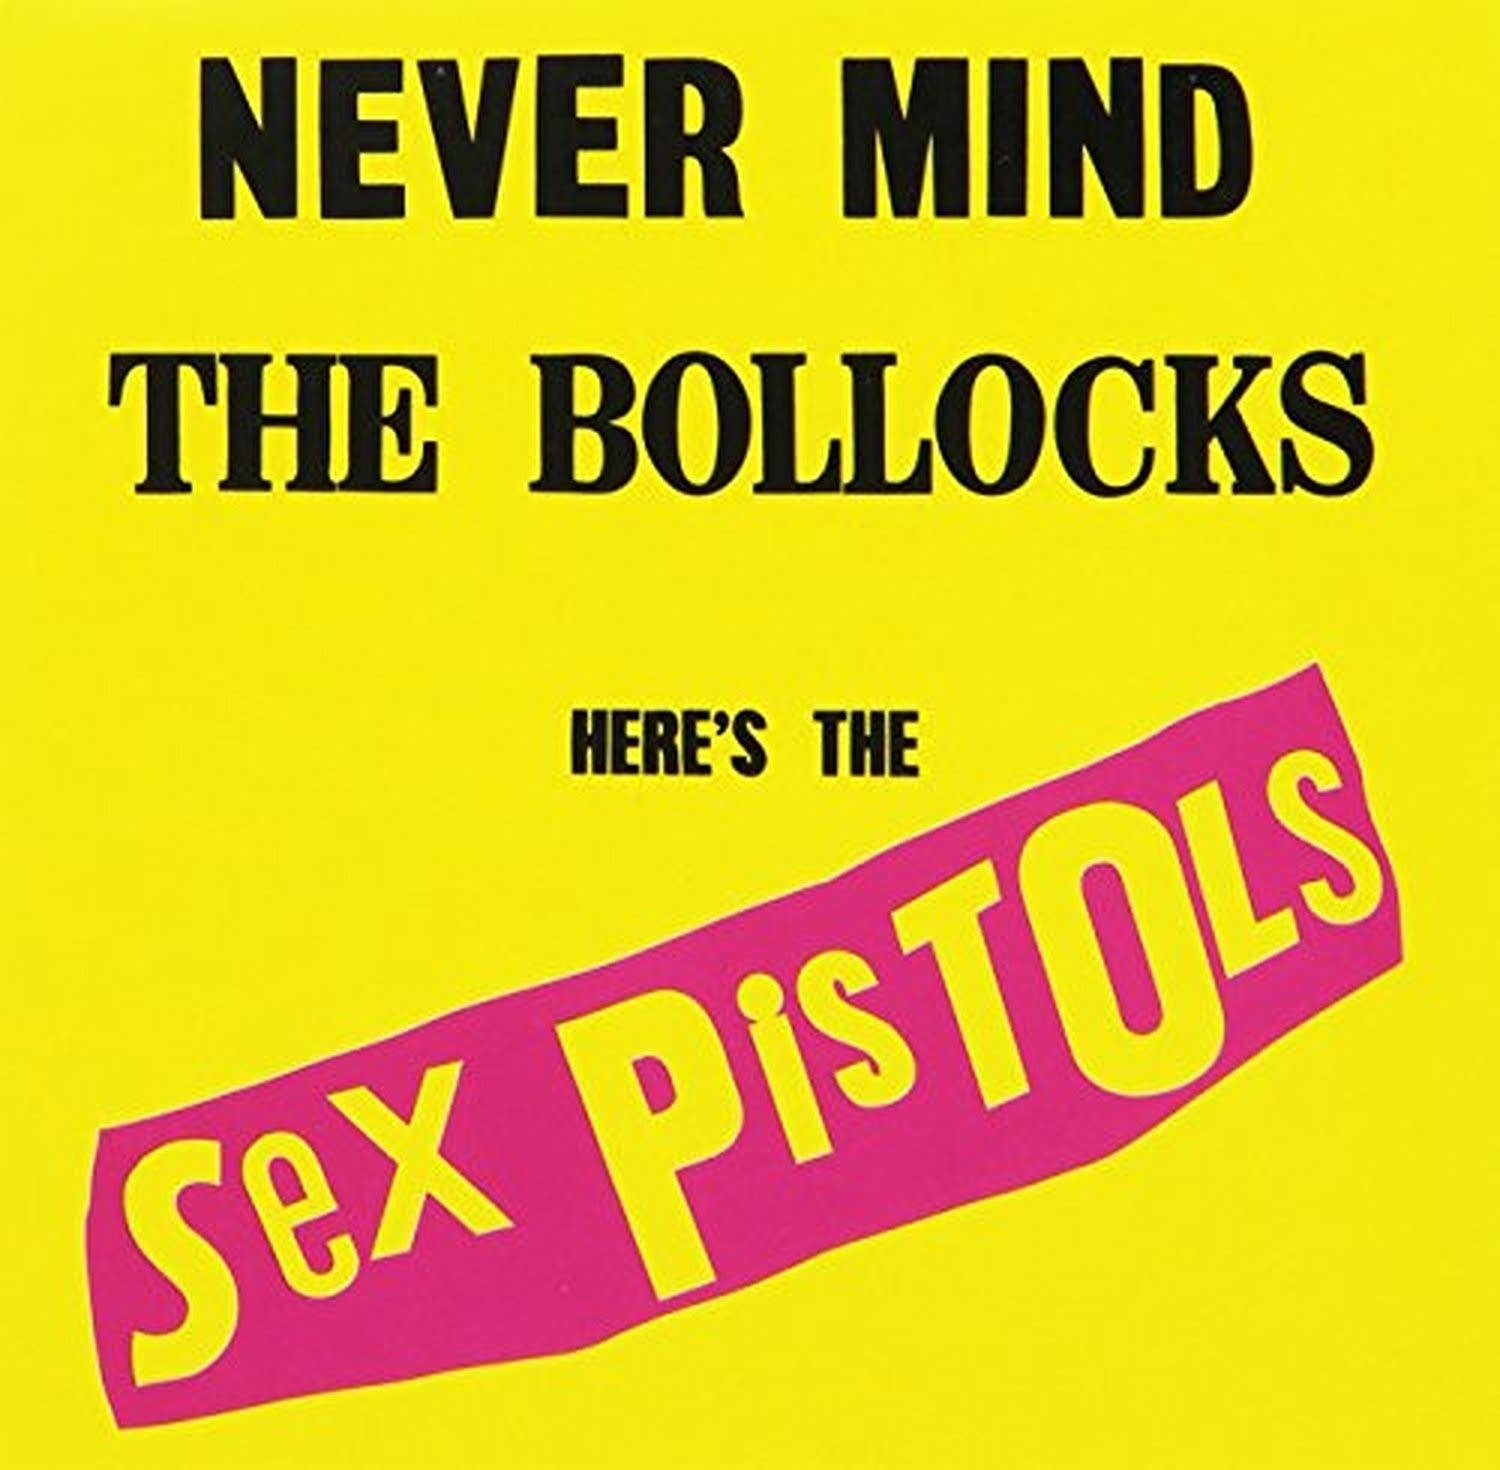 'Never Mind the Bollocks' is the Sex Pistols' only album